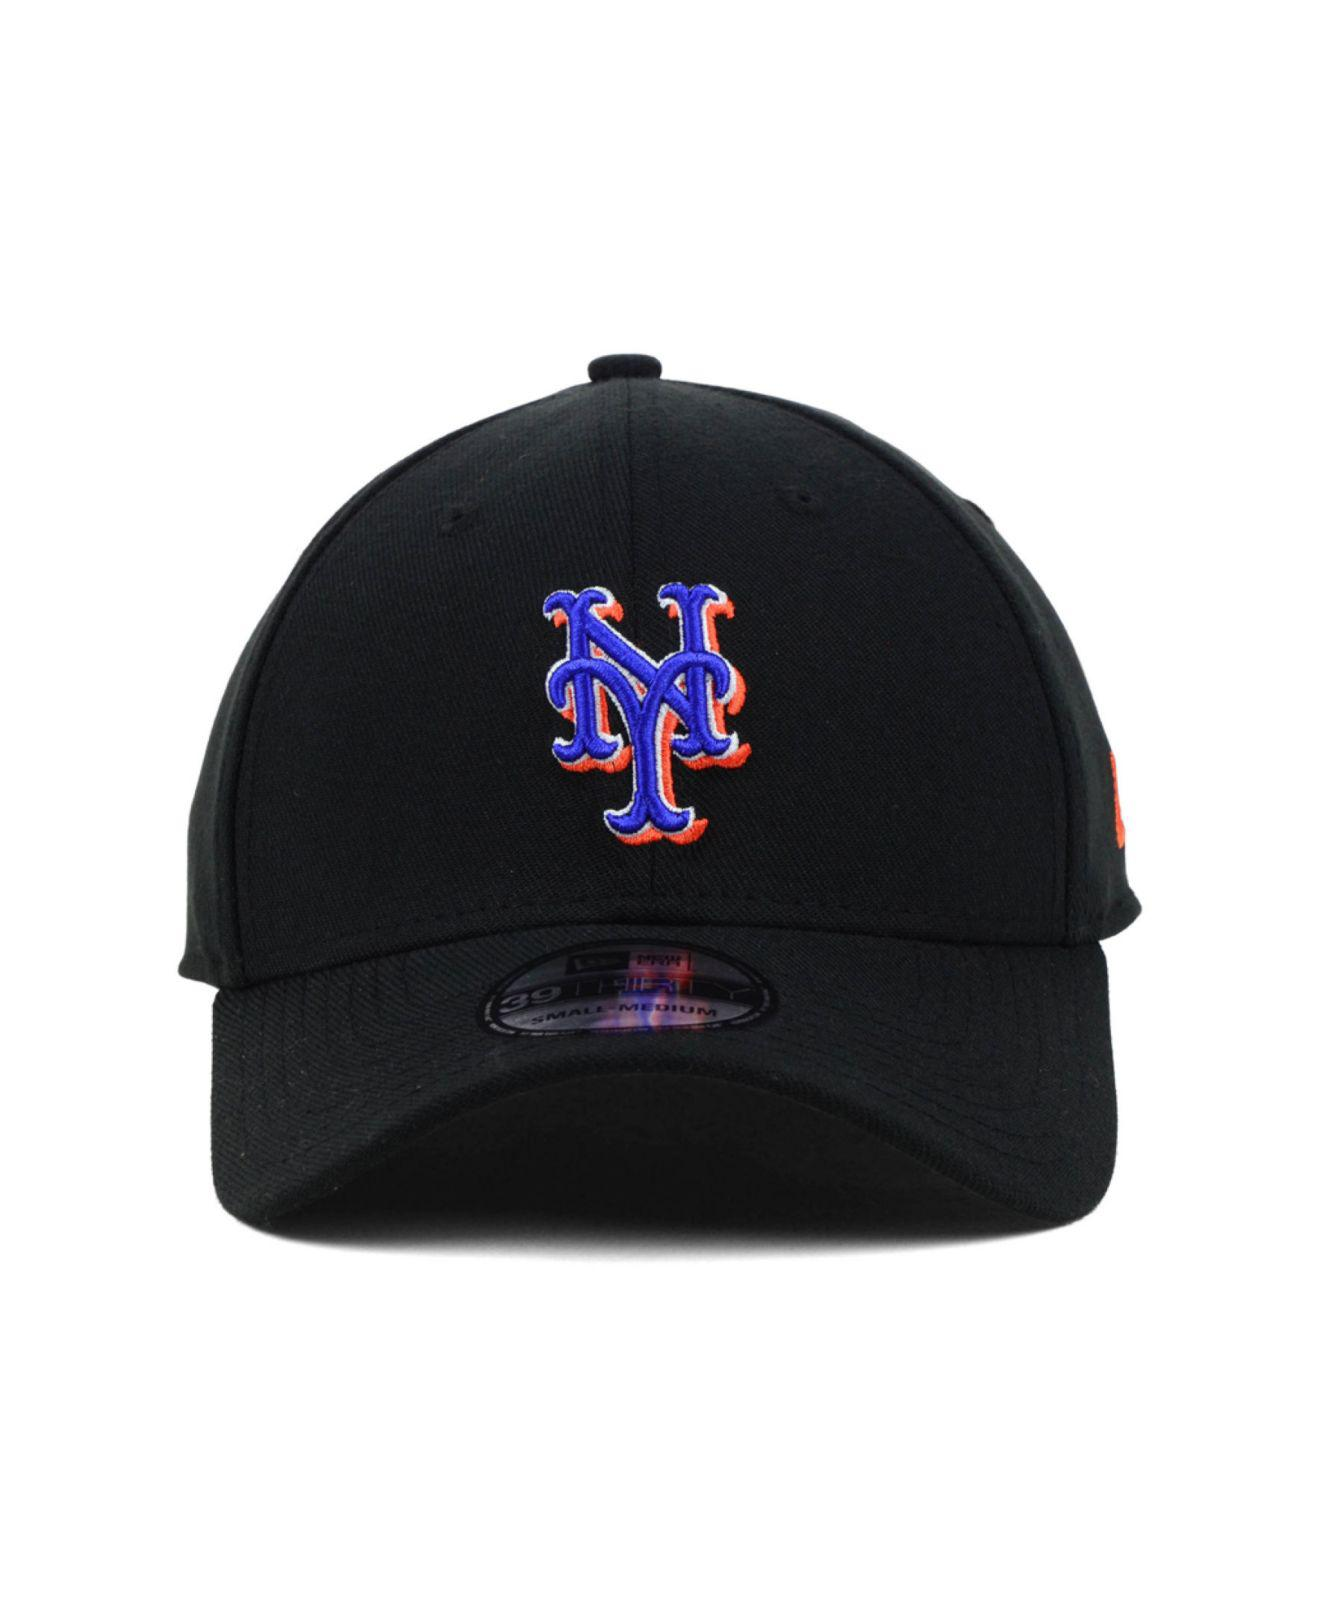 best loved 71f9a 24d91 ... closeout lyst ktz new york mets mlb team classic 39thirty cap in black  for men e2022